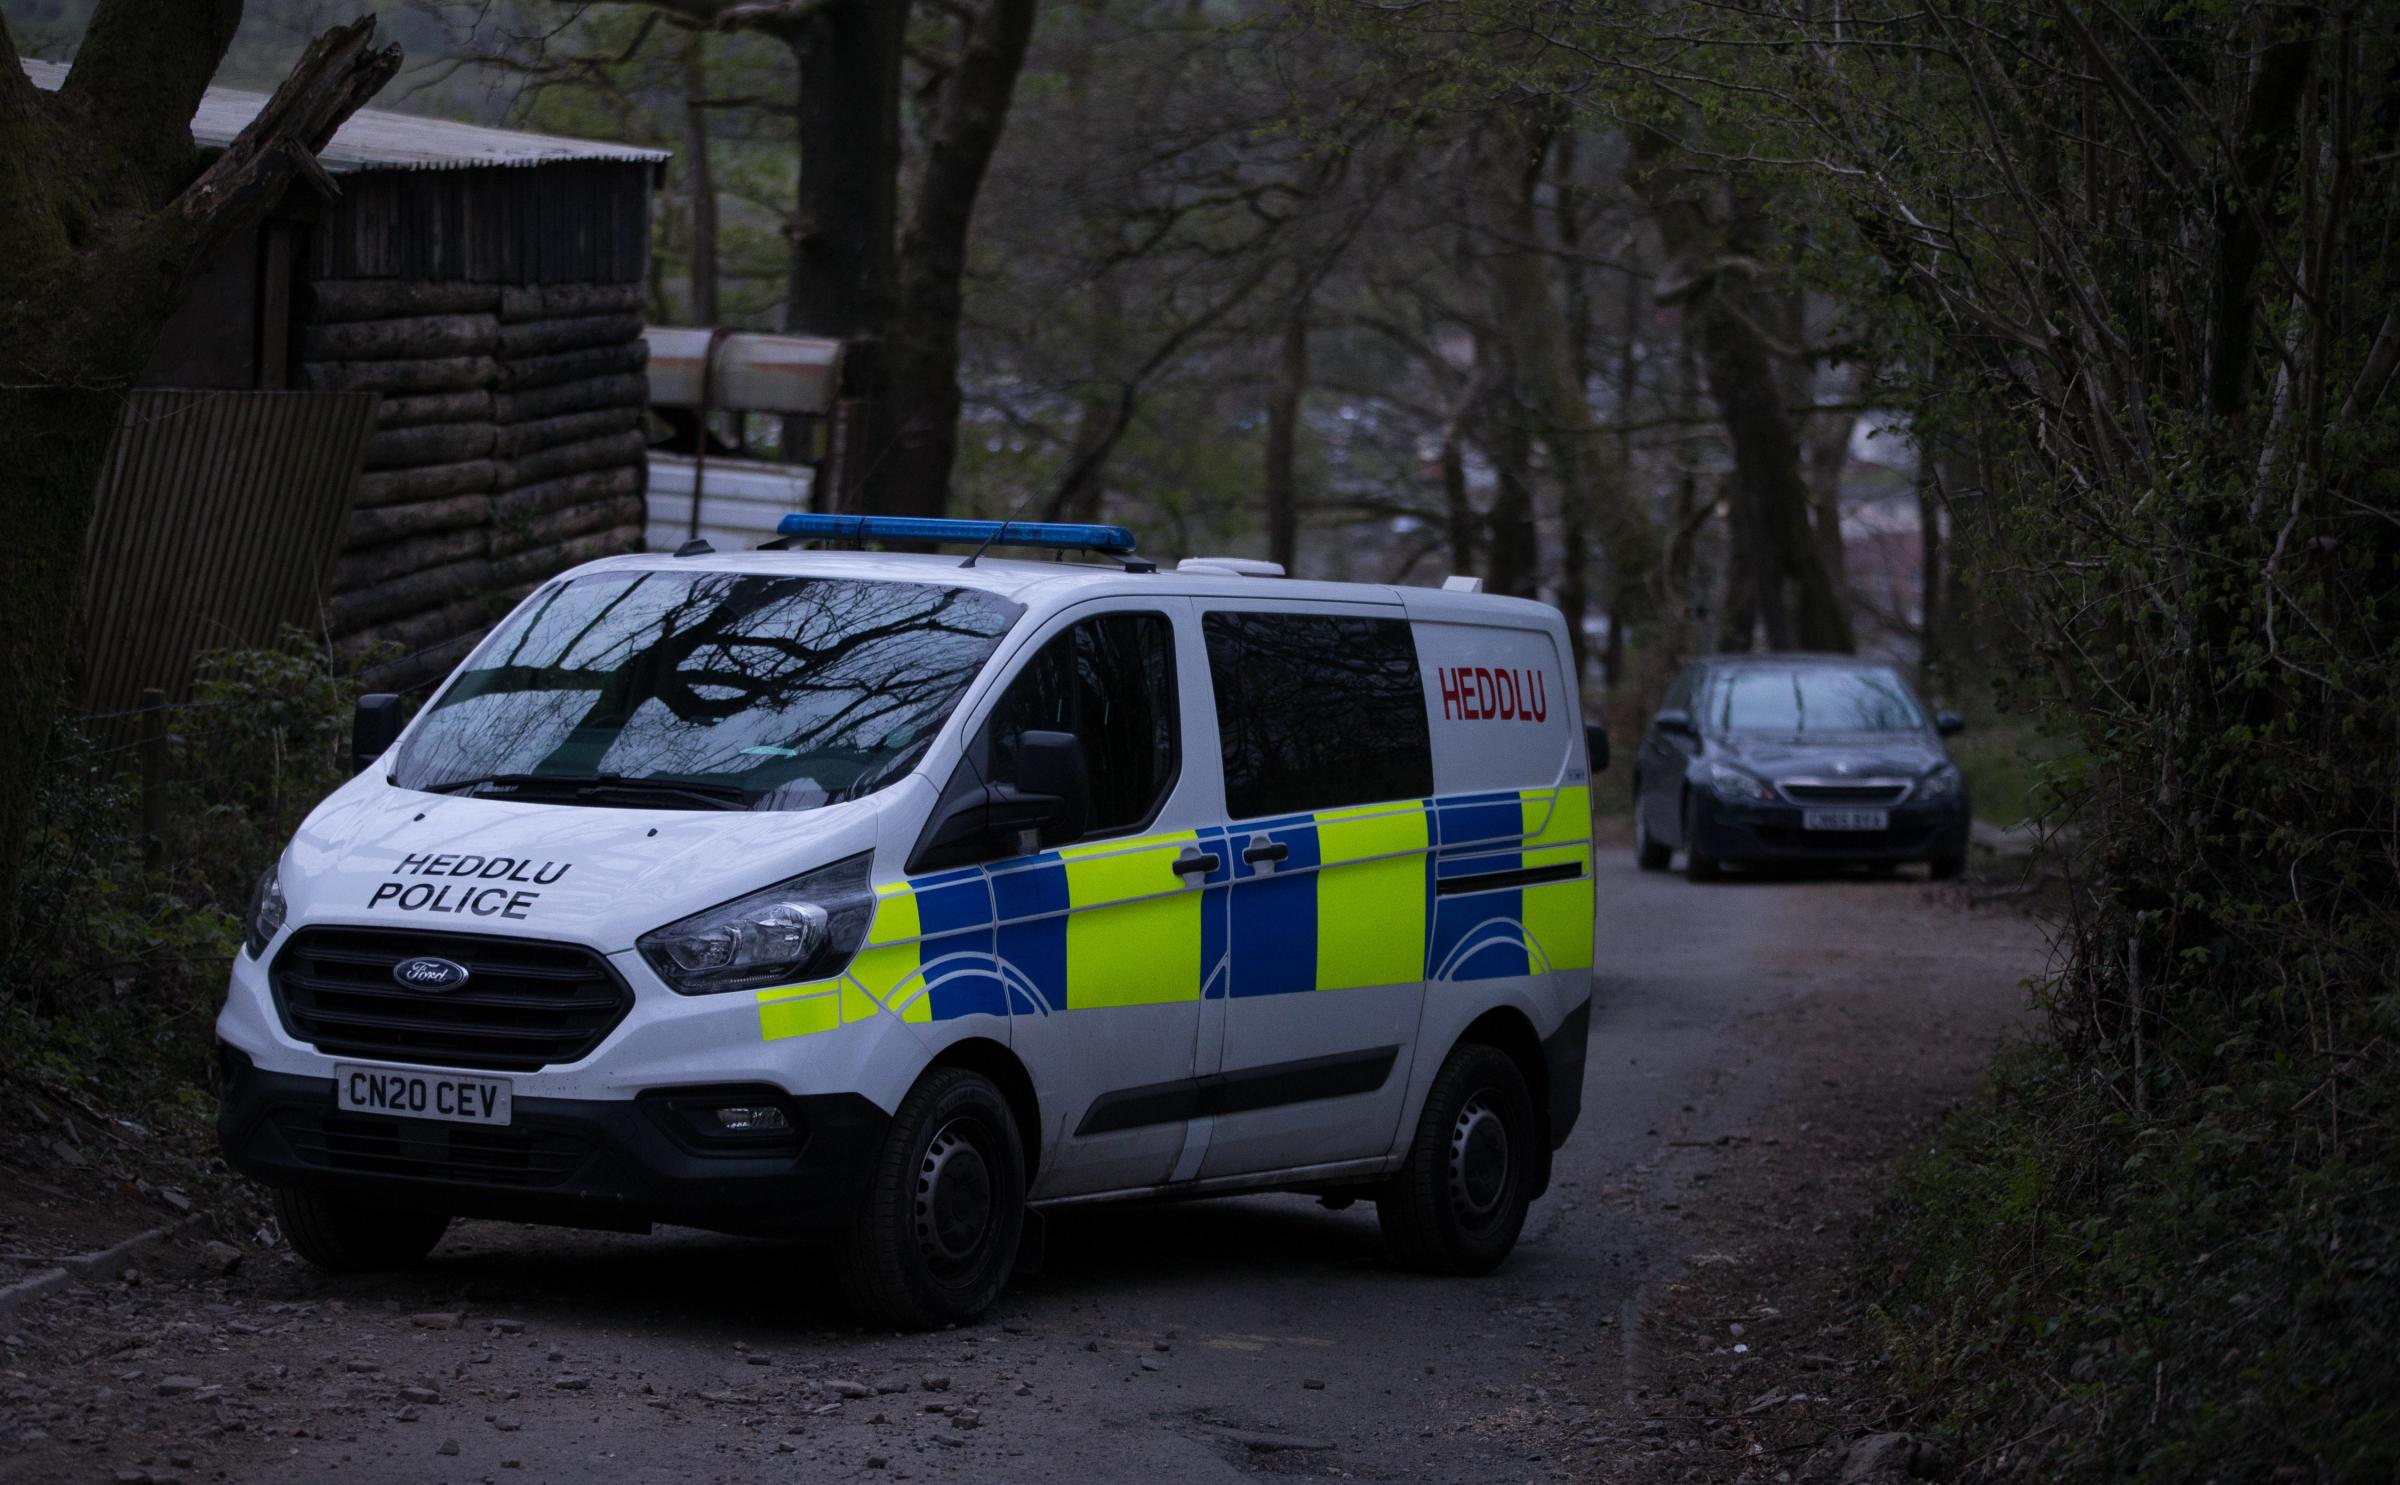 Gwent Police are hiring, with representative workforce in mind